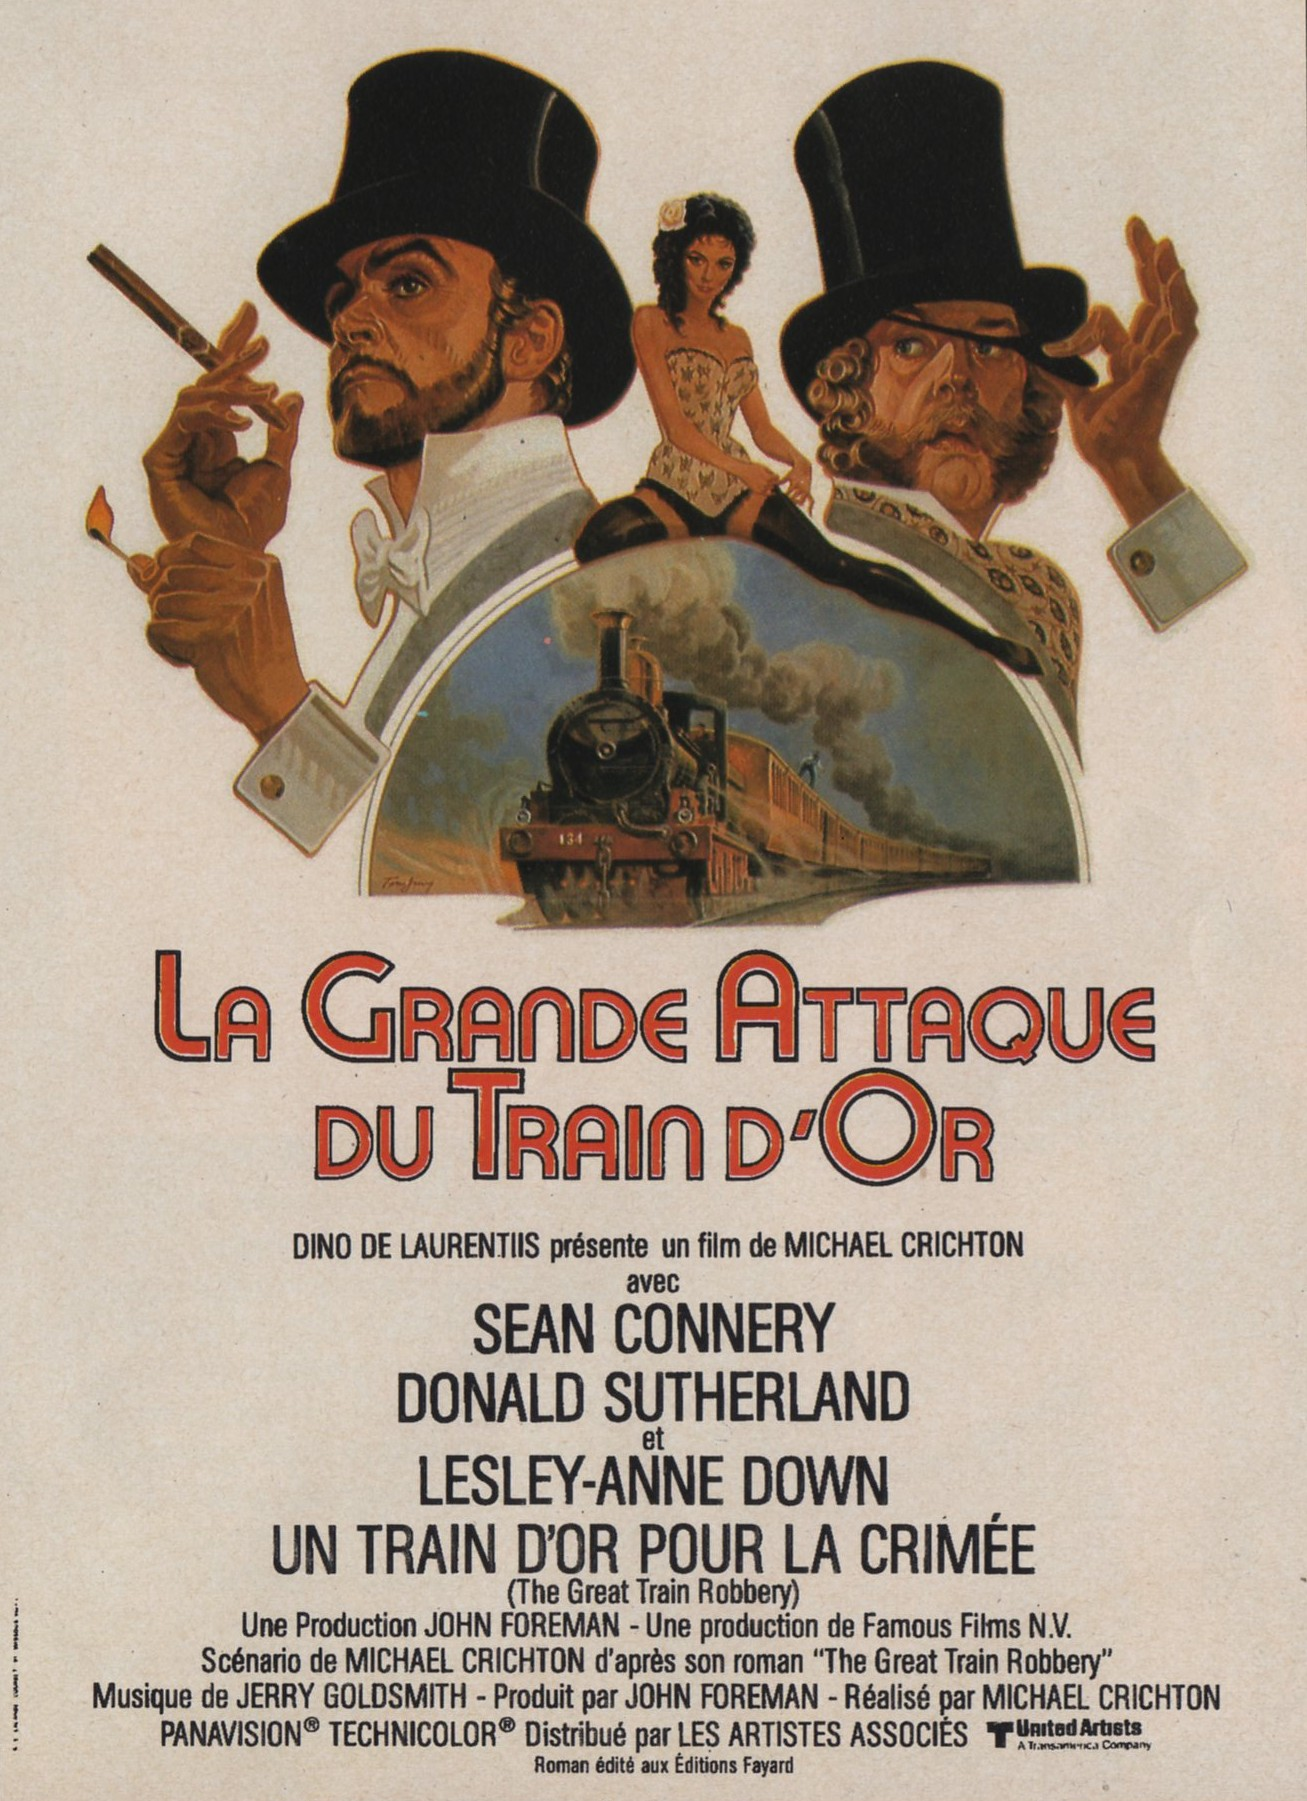 the great train robbery 1978 full movie free download